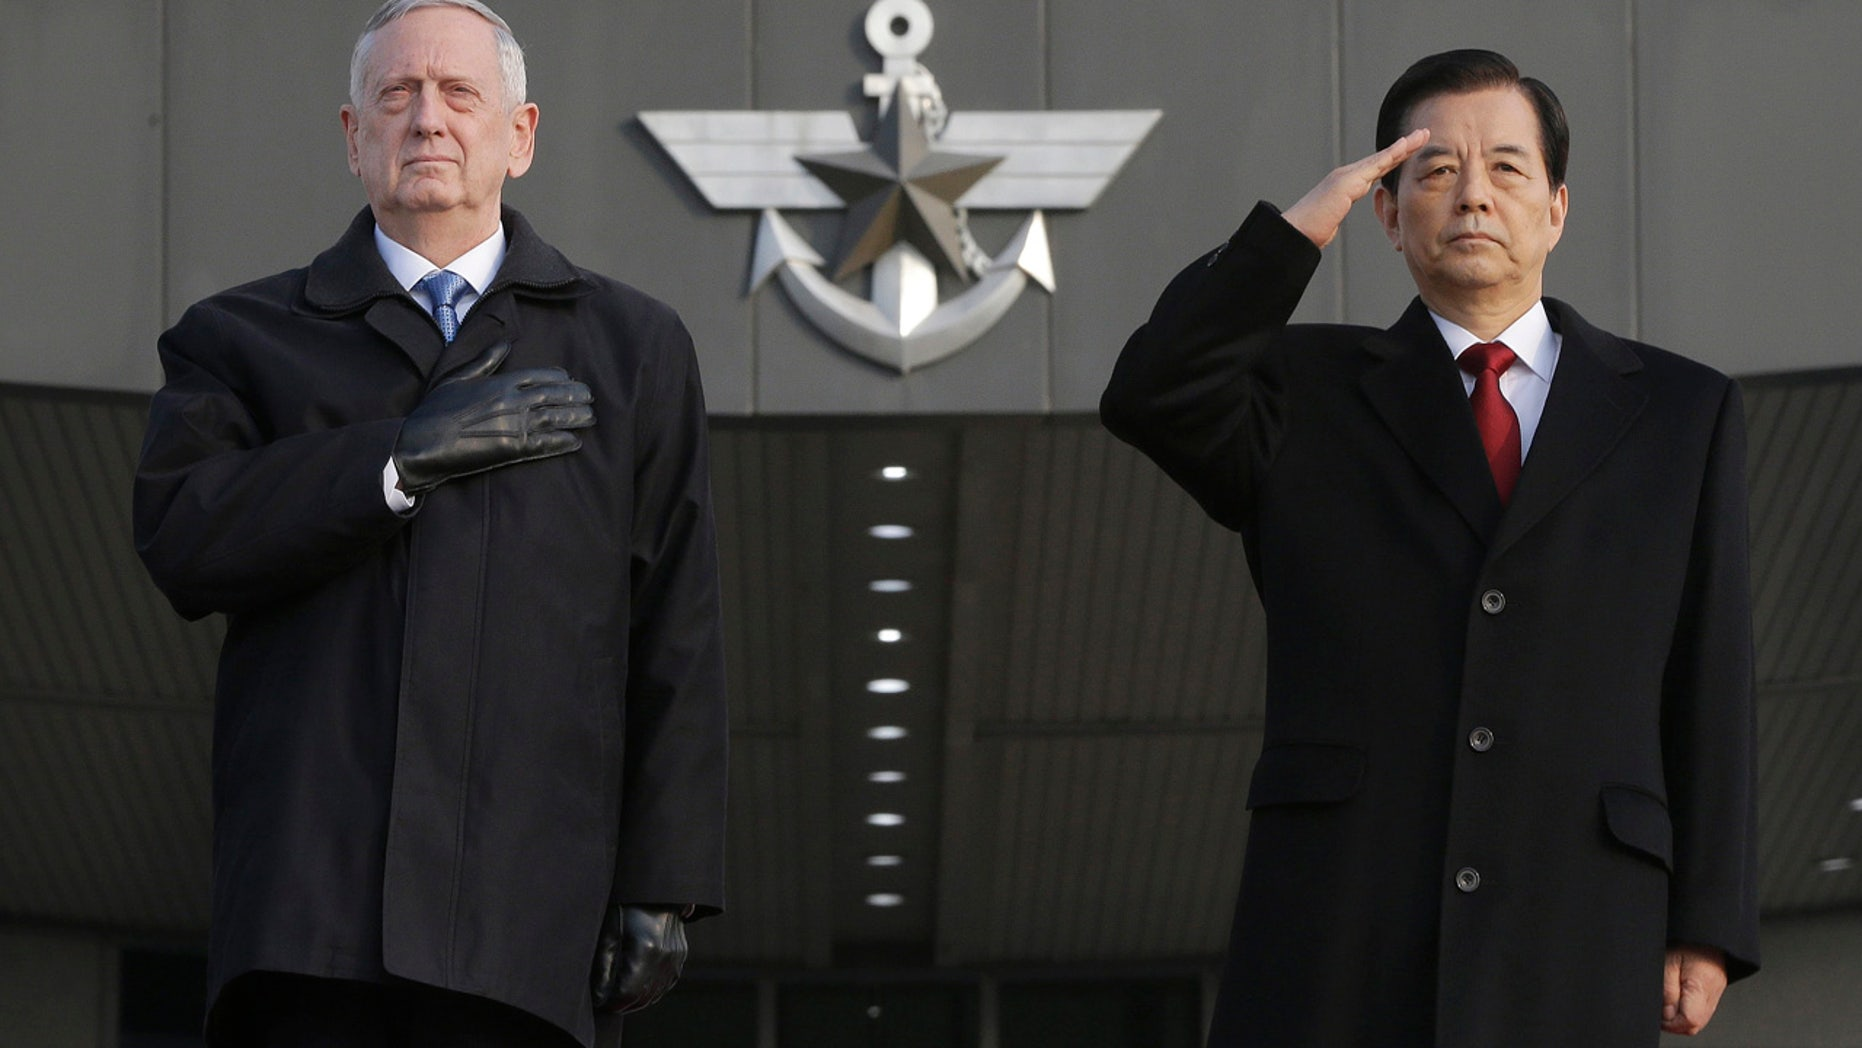 Feb. 3, 2017: U.S. Defense Secretary Jim Mattis, left, and South Korean Defense Minister Han Min Koo salute during a welcome ceremony for Mattis at the Defense Ministry in Seoul.